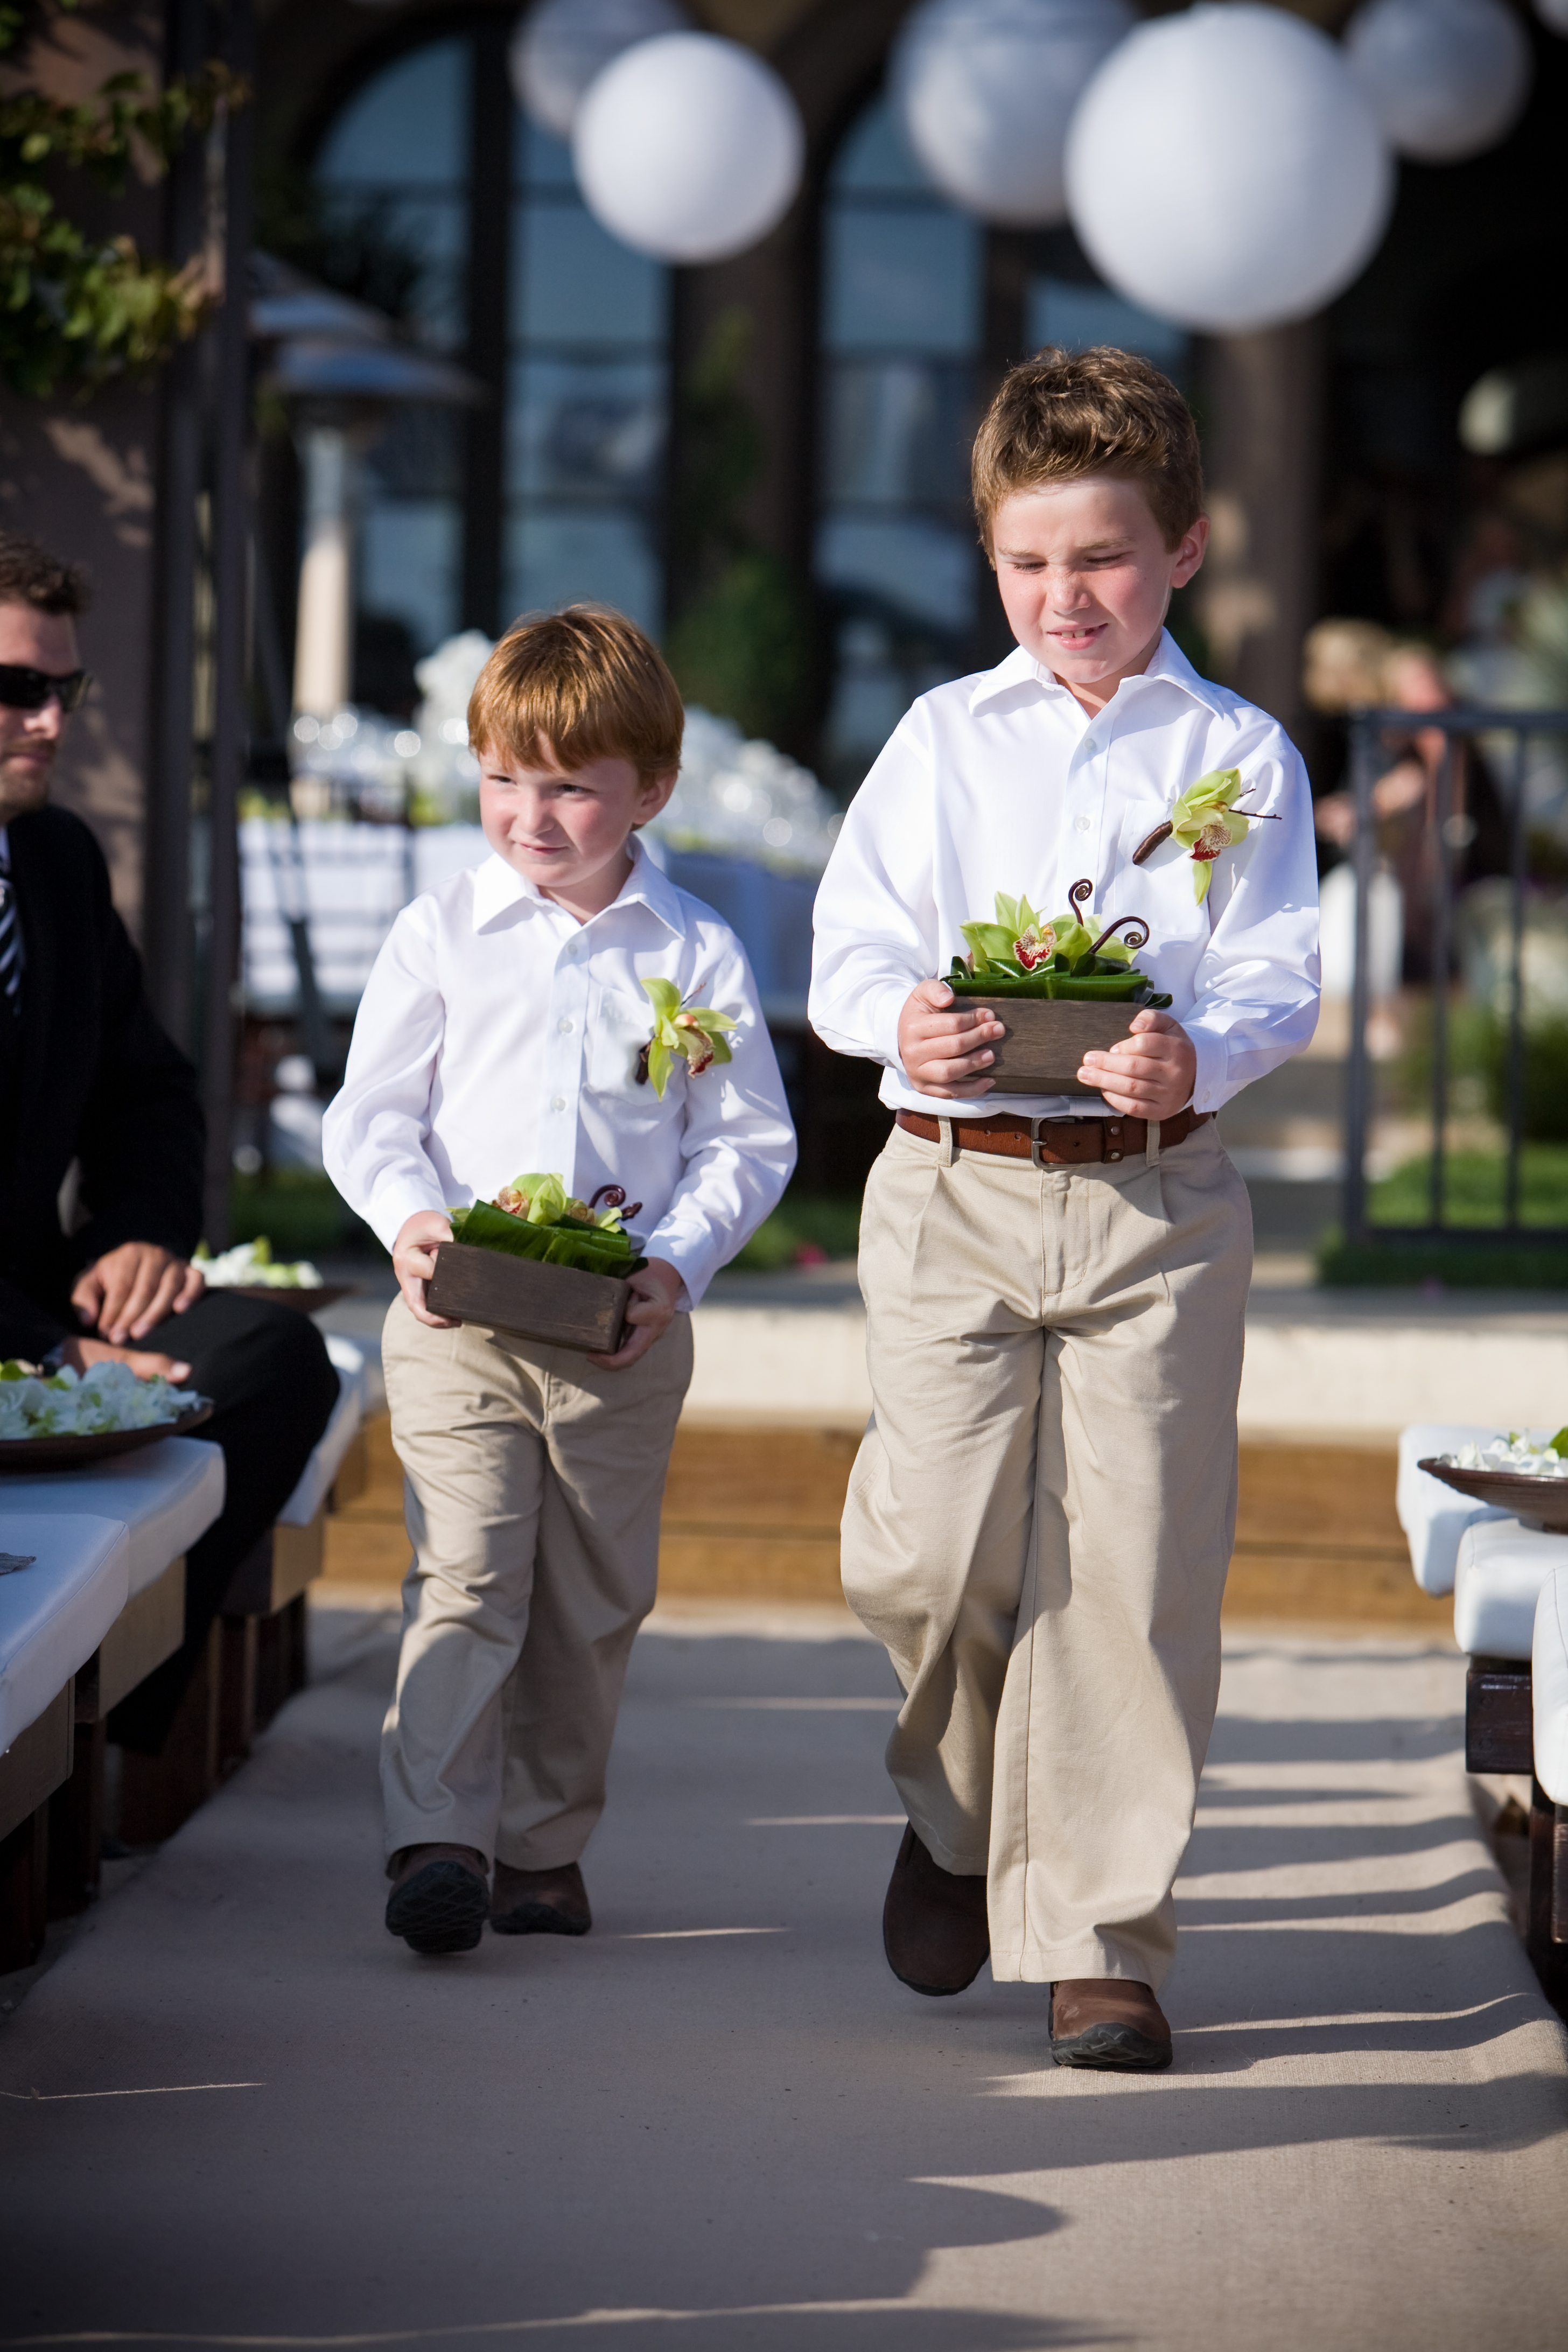 The Ring Bearers Wore Khaki Pants And White Collared Shirts With Green Orchid Boutonnieres Perfect